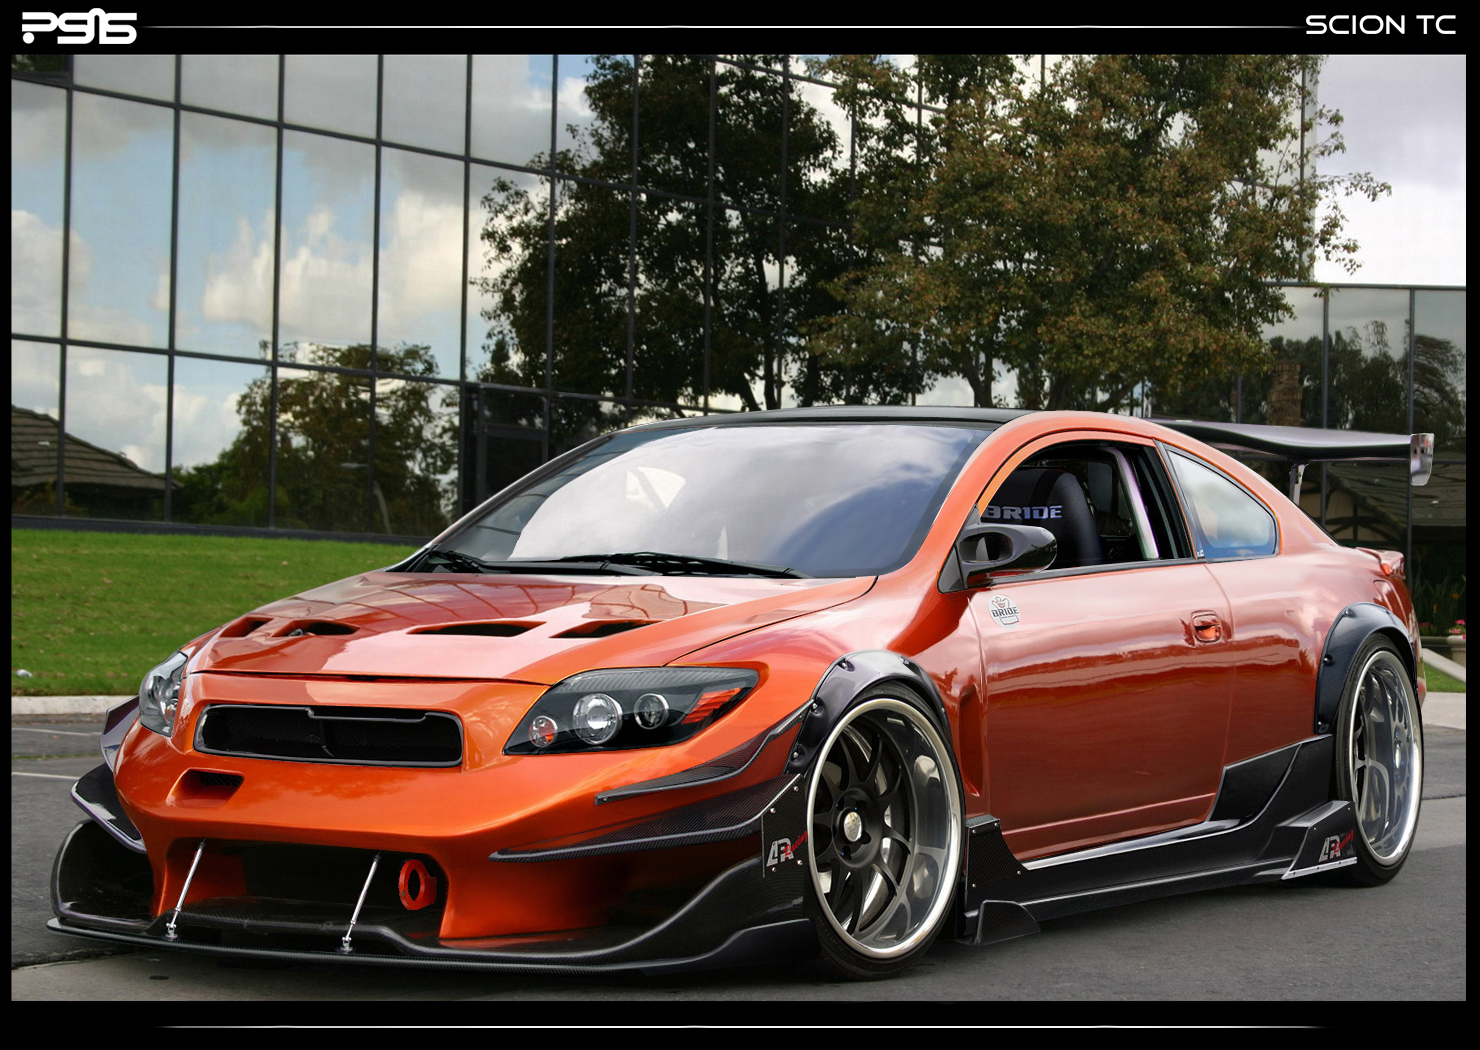 scion tc modified